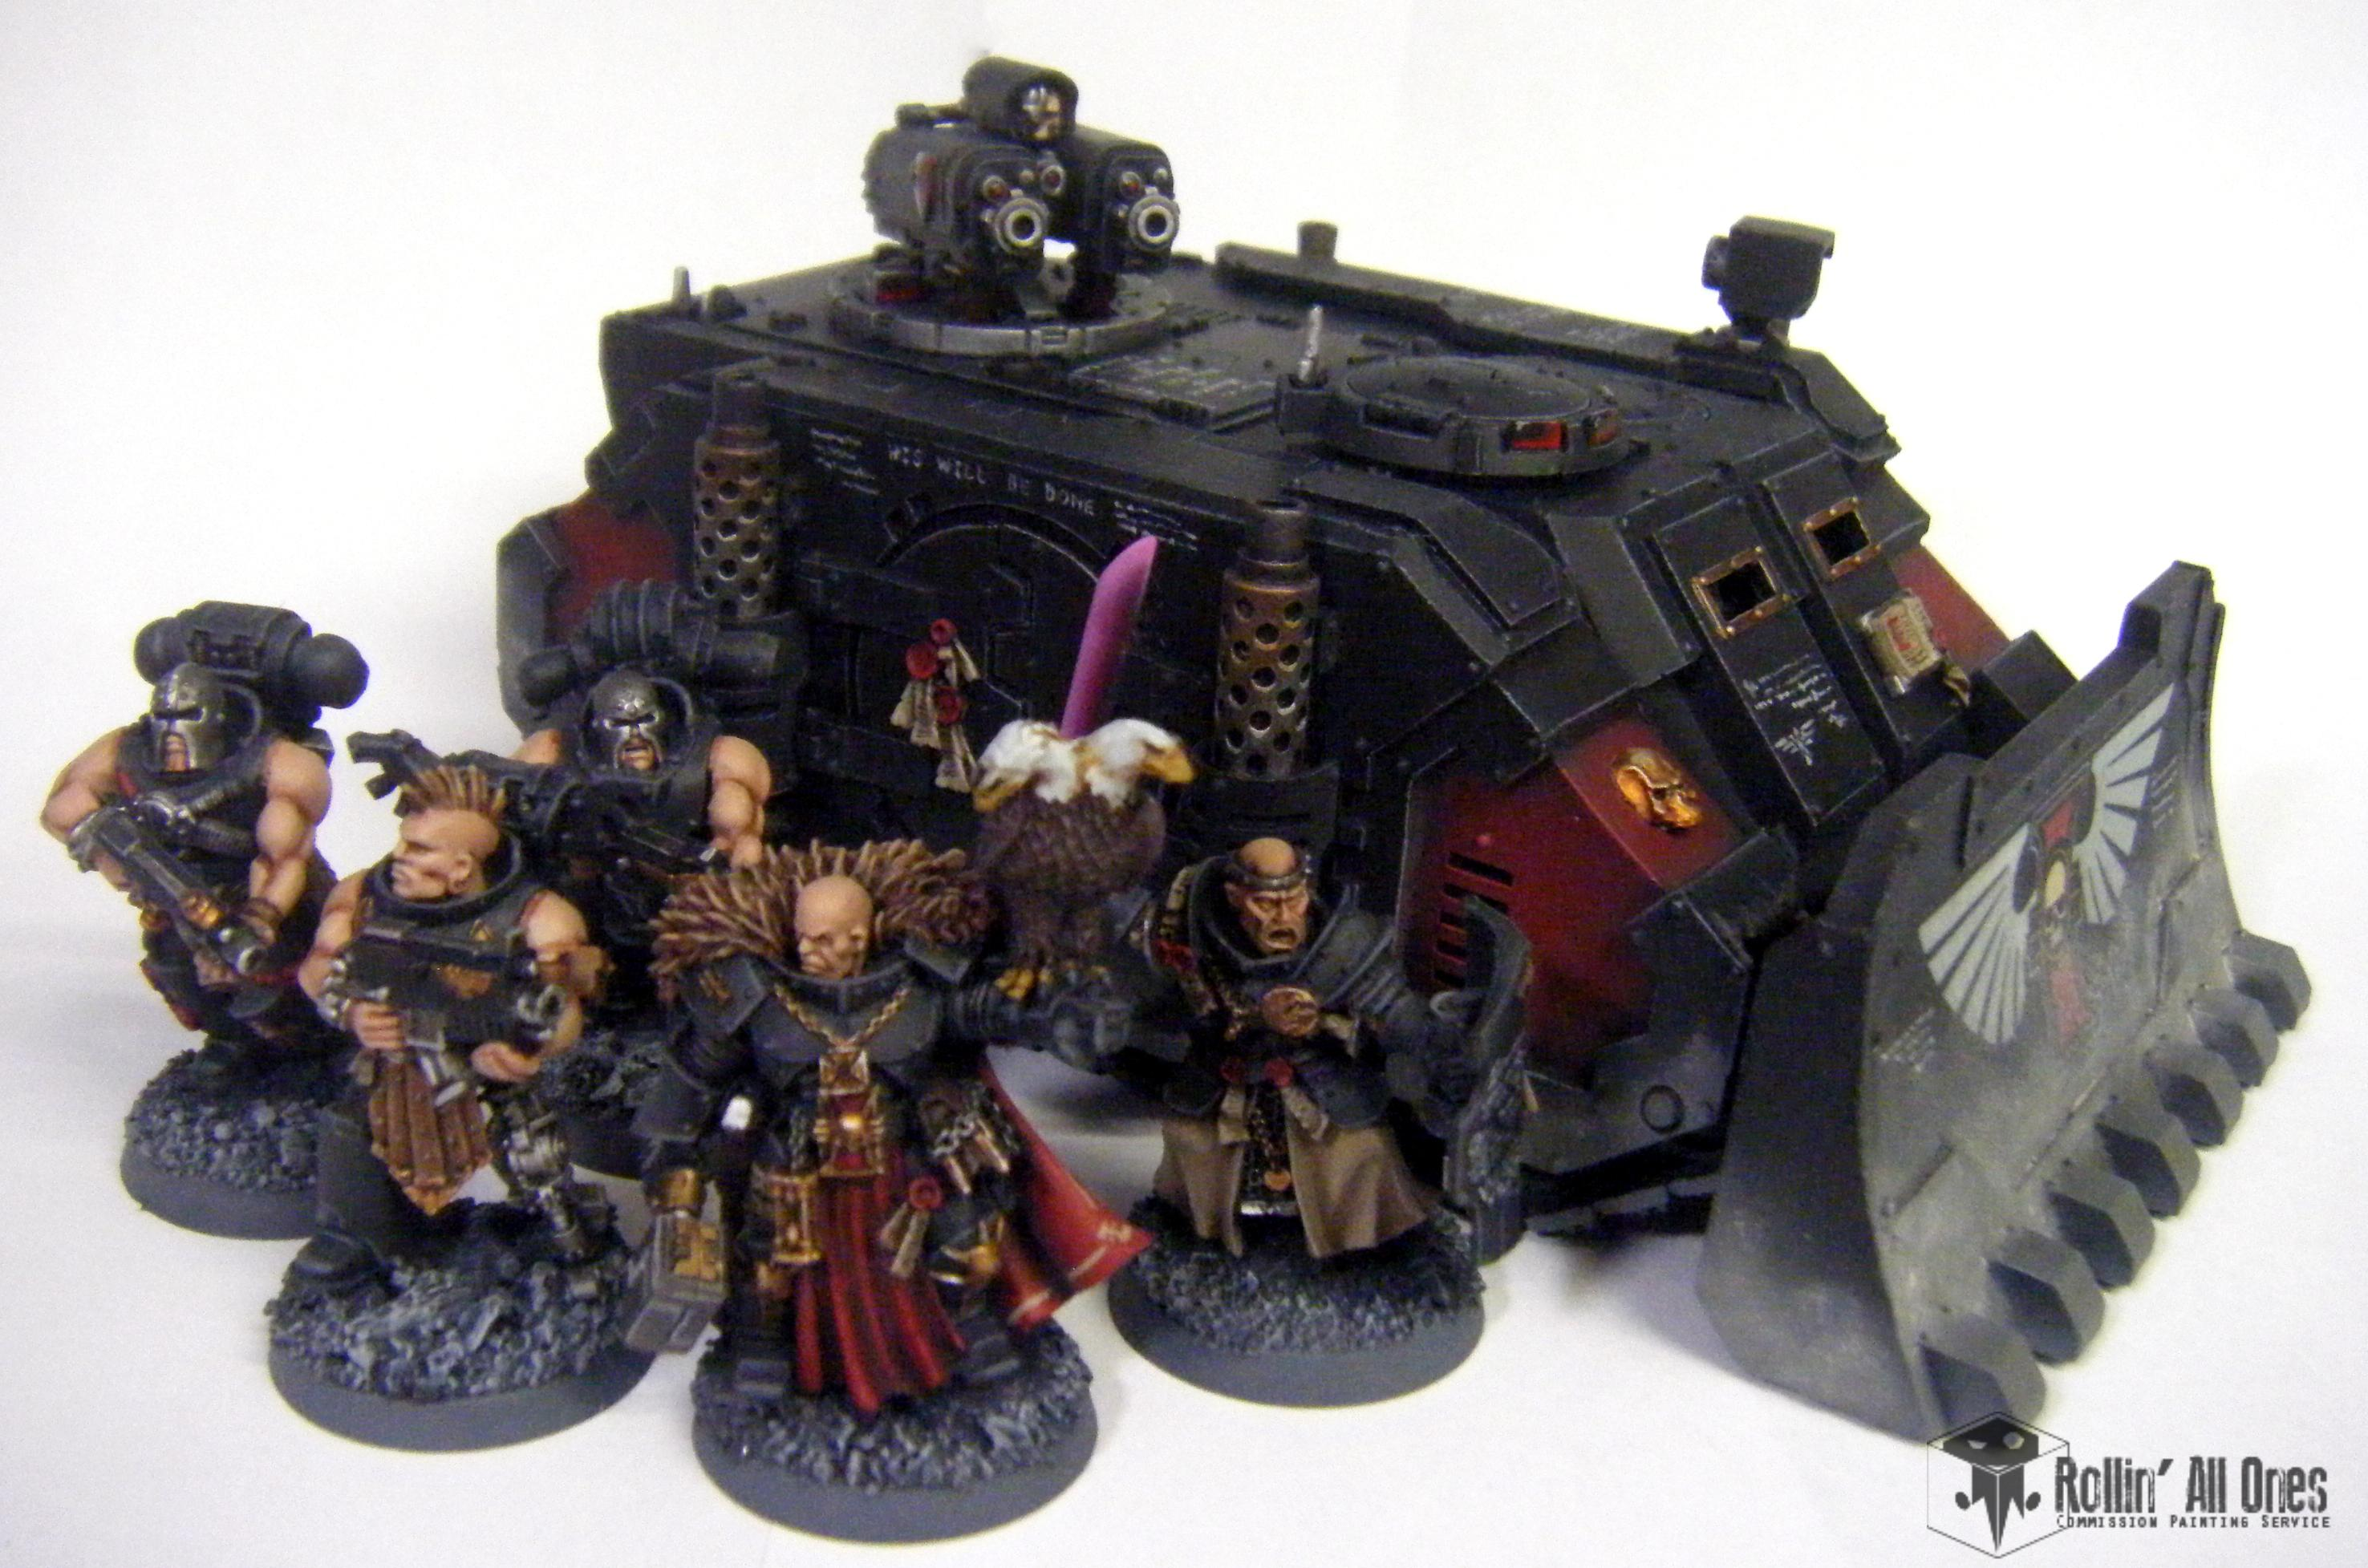 Deimos, Forge World, Henchmen, Inquisition, Razorback, Retinue